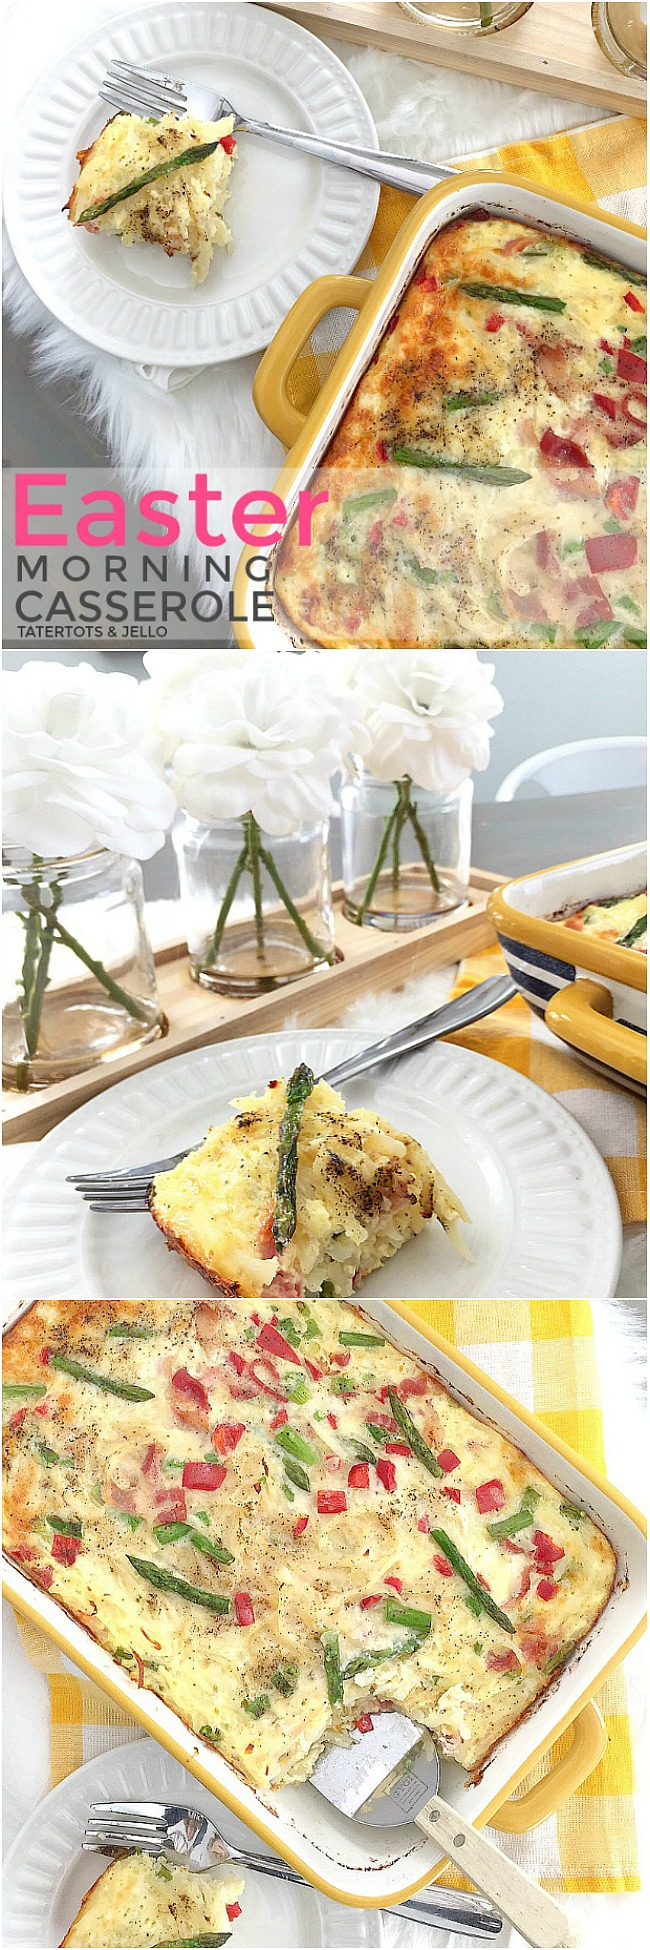 The Most Delicious Easter Morning Brunch Casserole